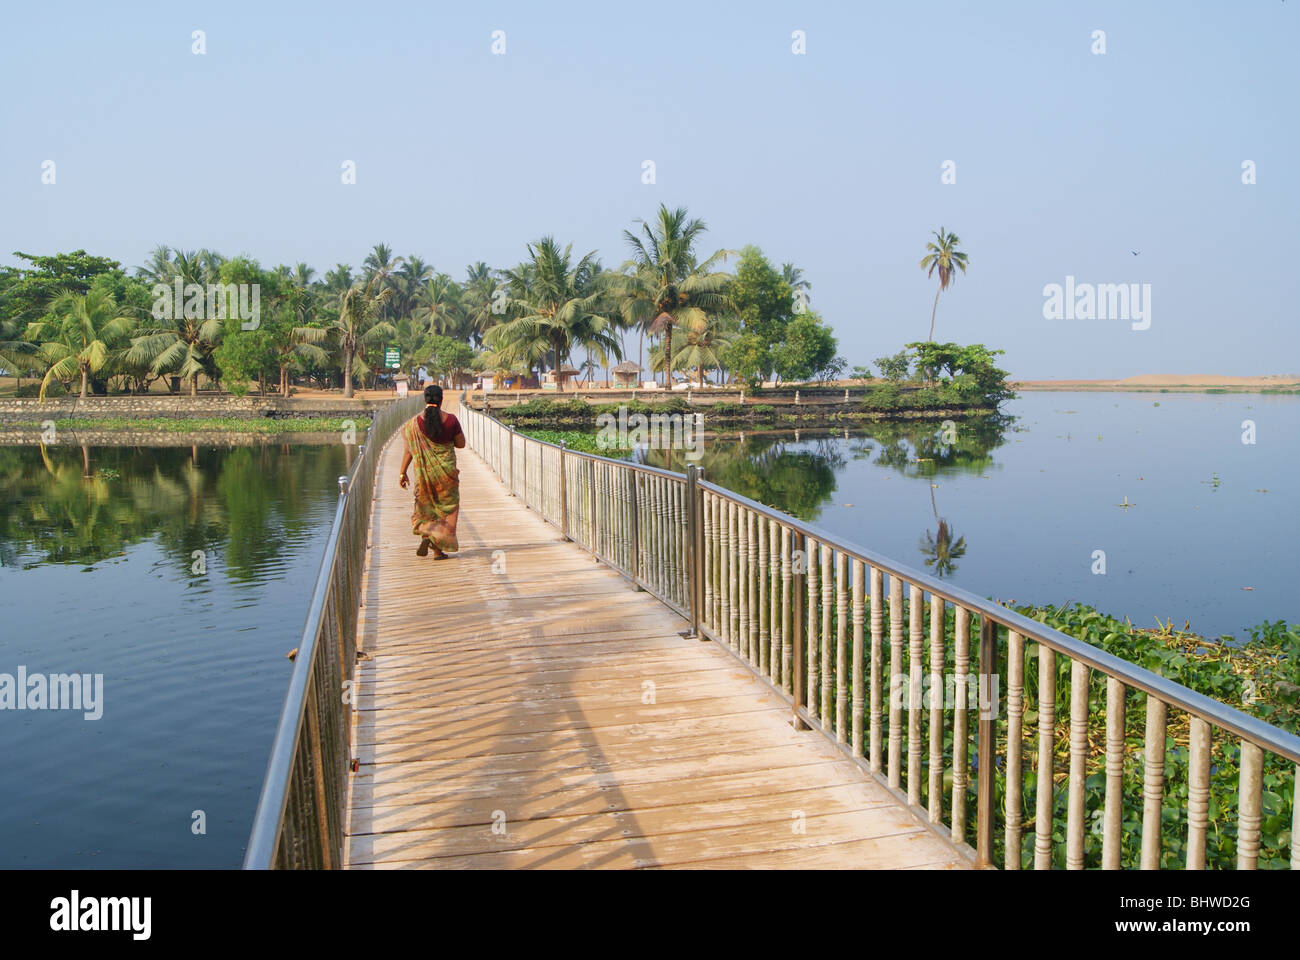 Woman Walking through the Beautiful floating wooden bridge in Veli Tourist Village surrounded by Kerala Backwaters - Stock Image